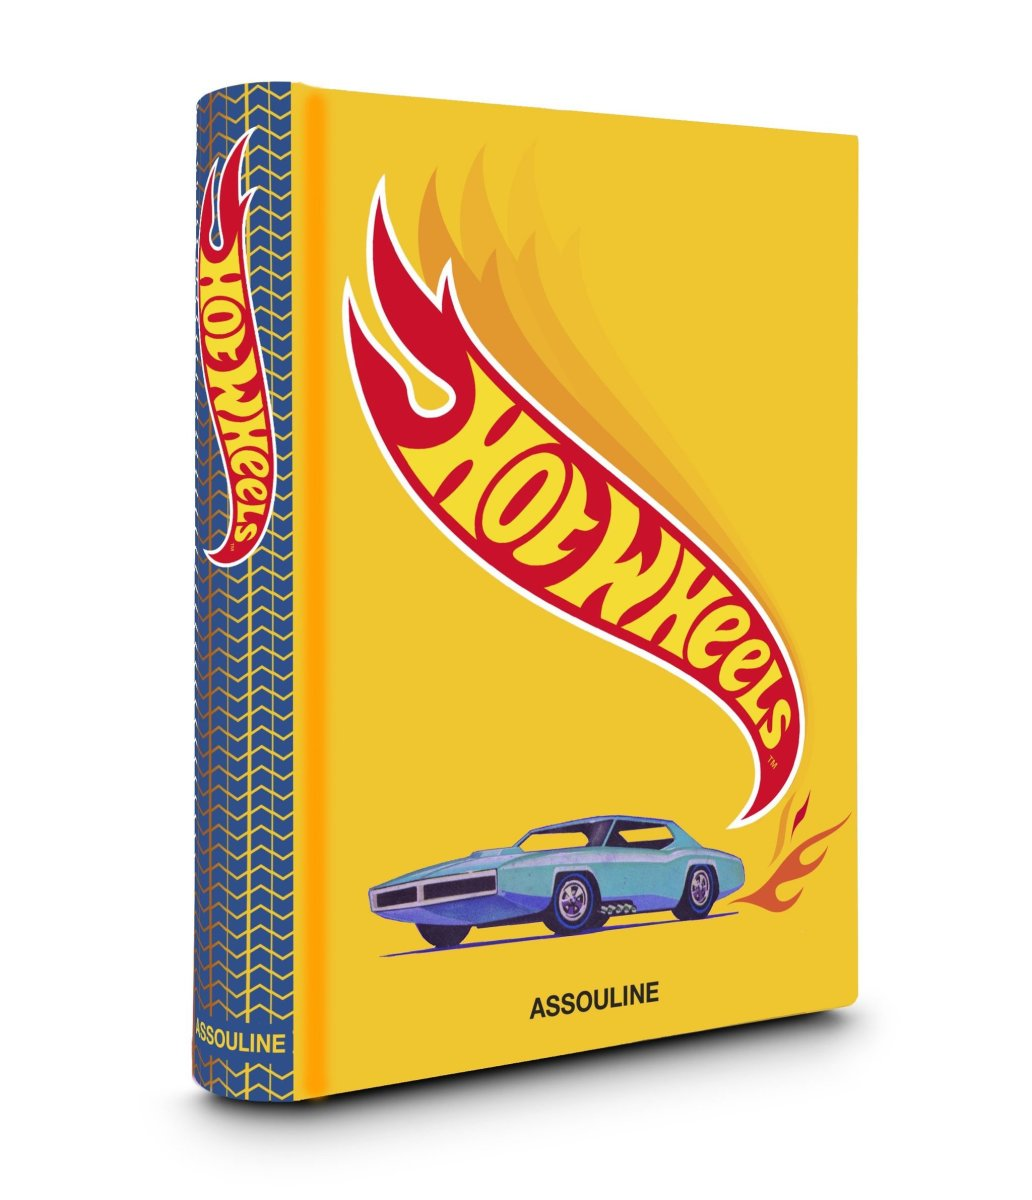 Hot Wheels by Assouline